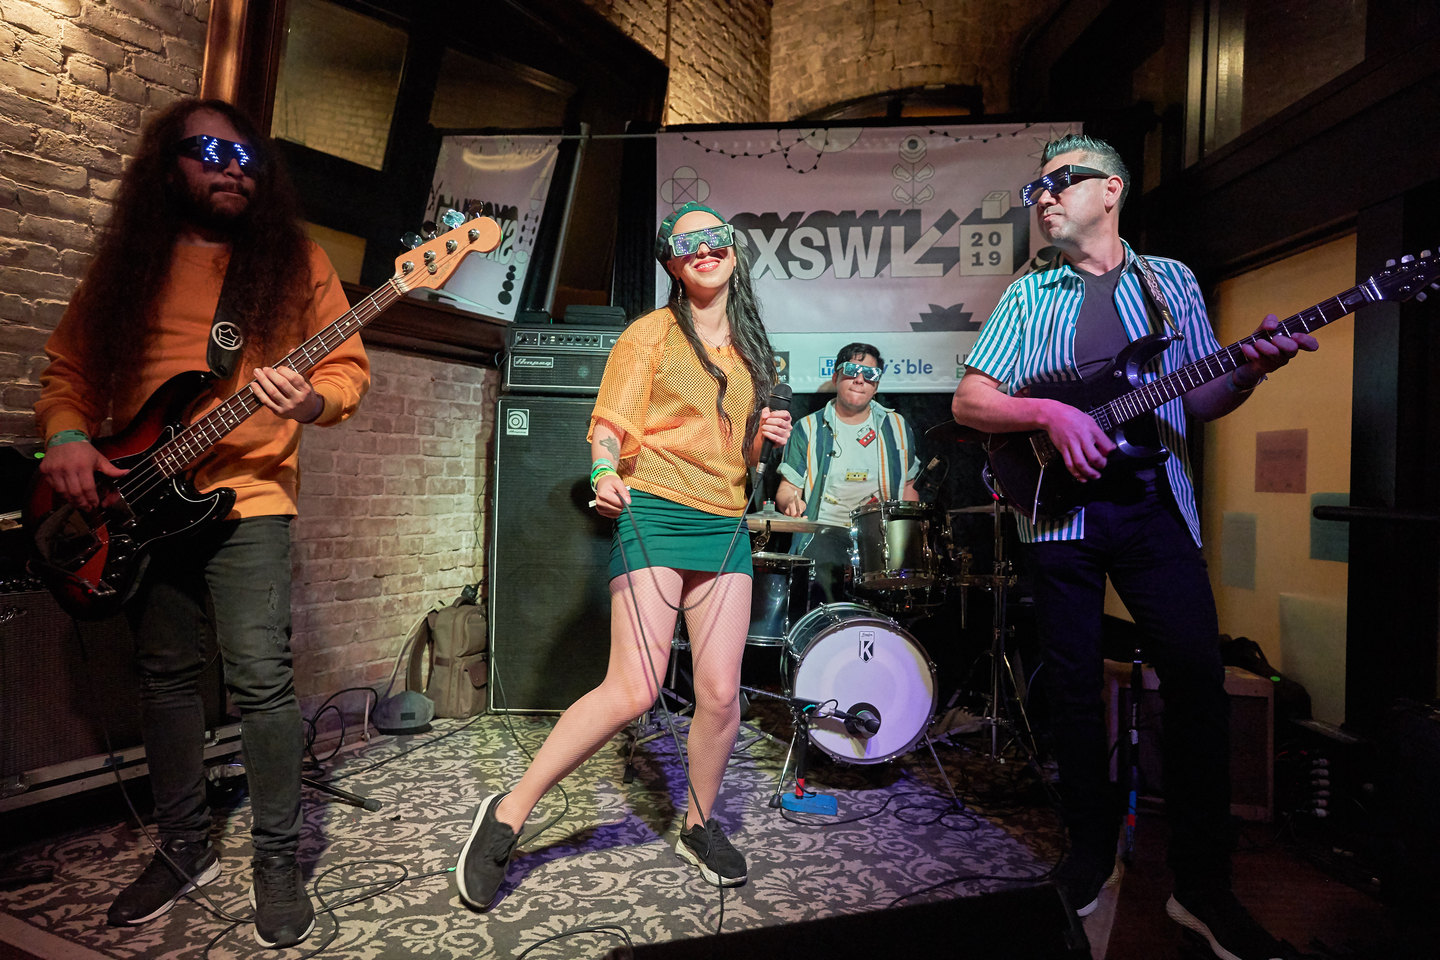 Edna and The Musicians at Speakeasy Kabaret, presented by Zona Indie – Photo by Naveed Parekh